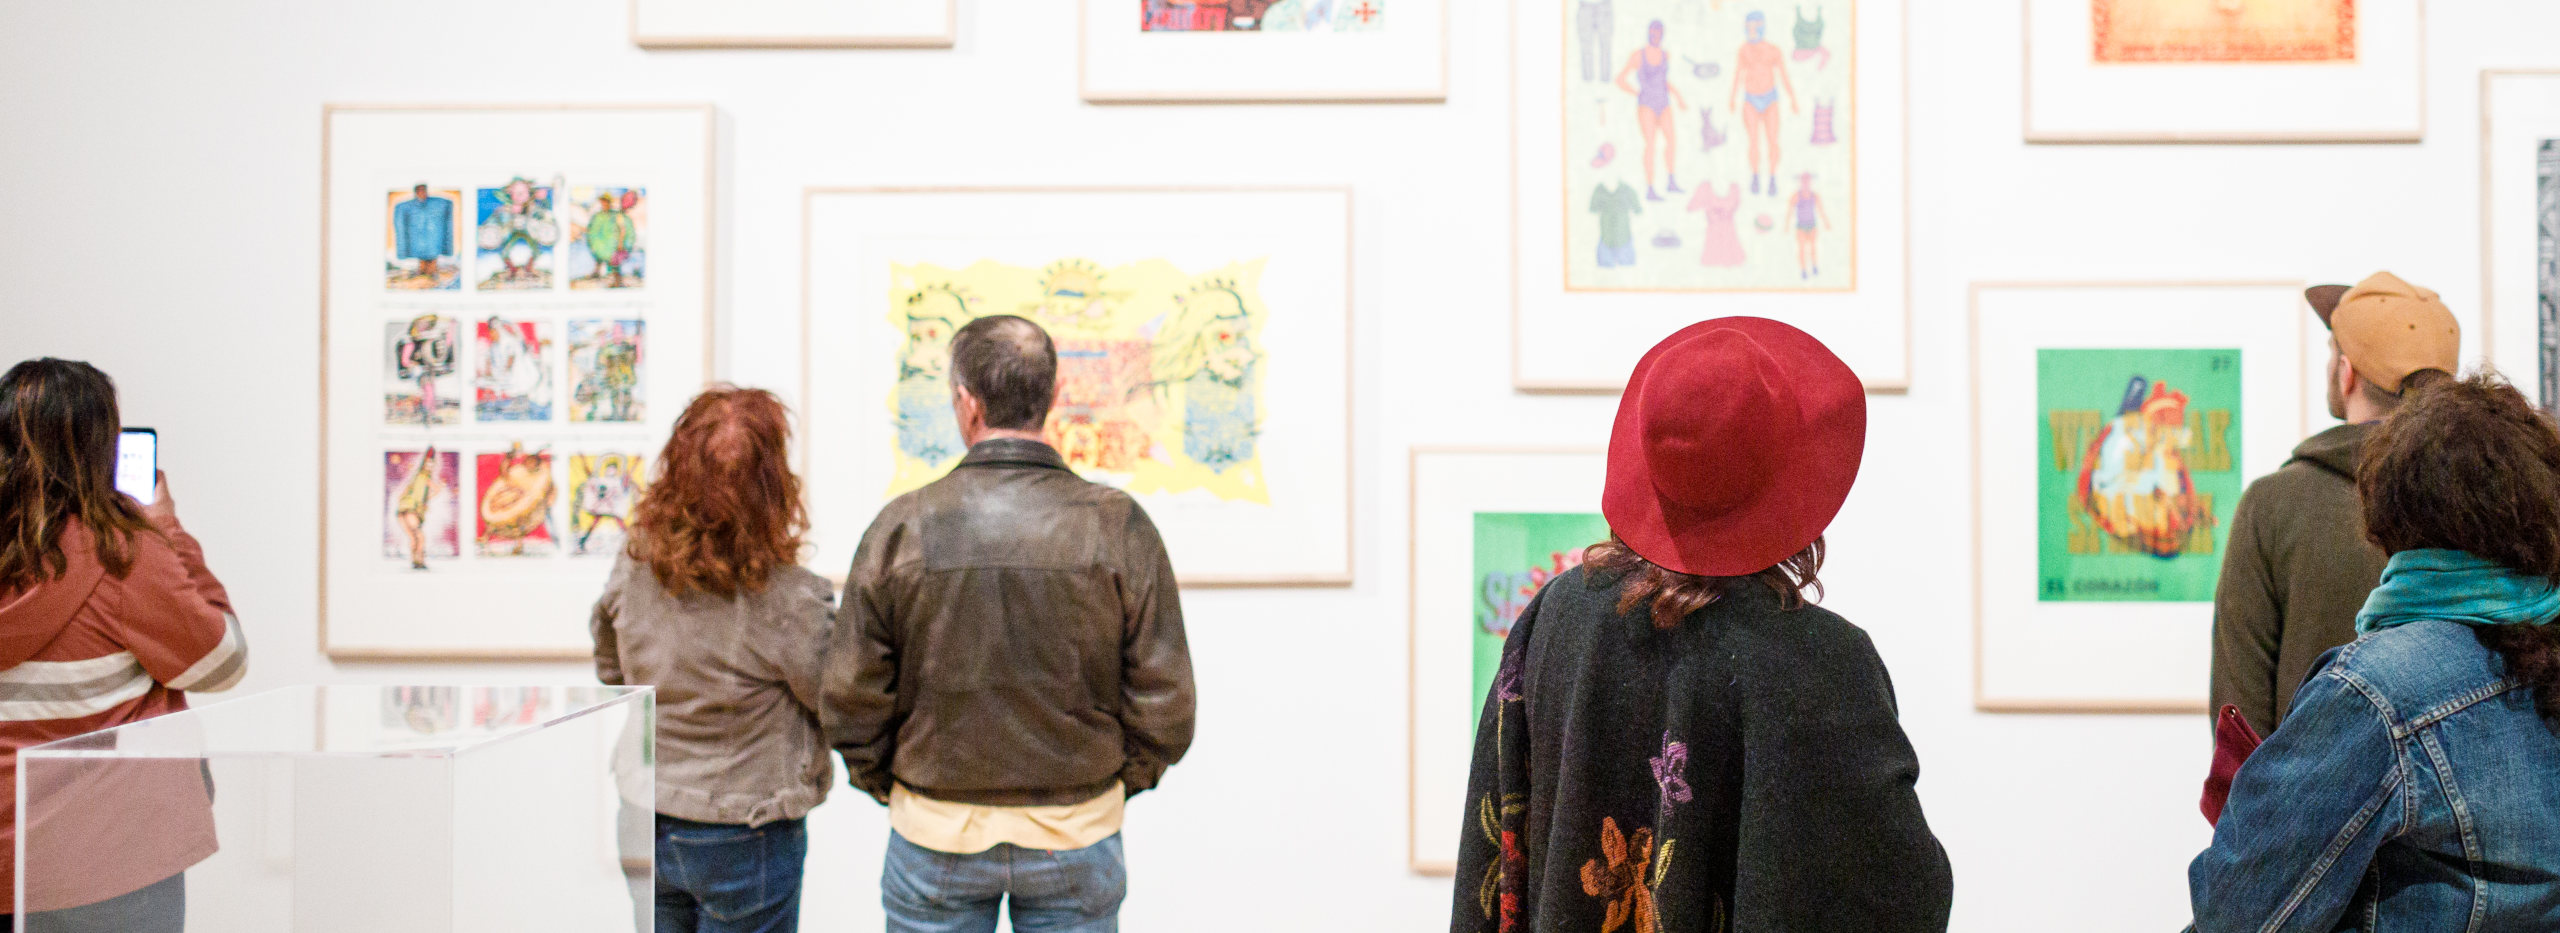 A group of patrons view silkscreen prints displayed on a gallery wall